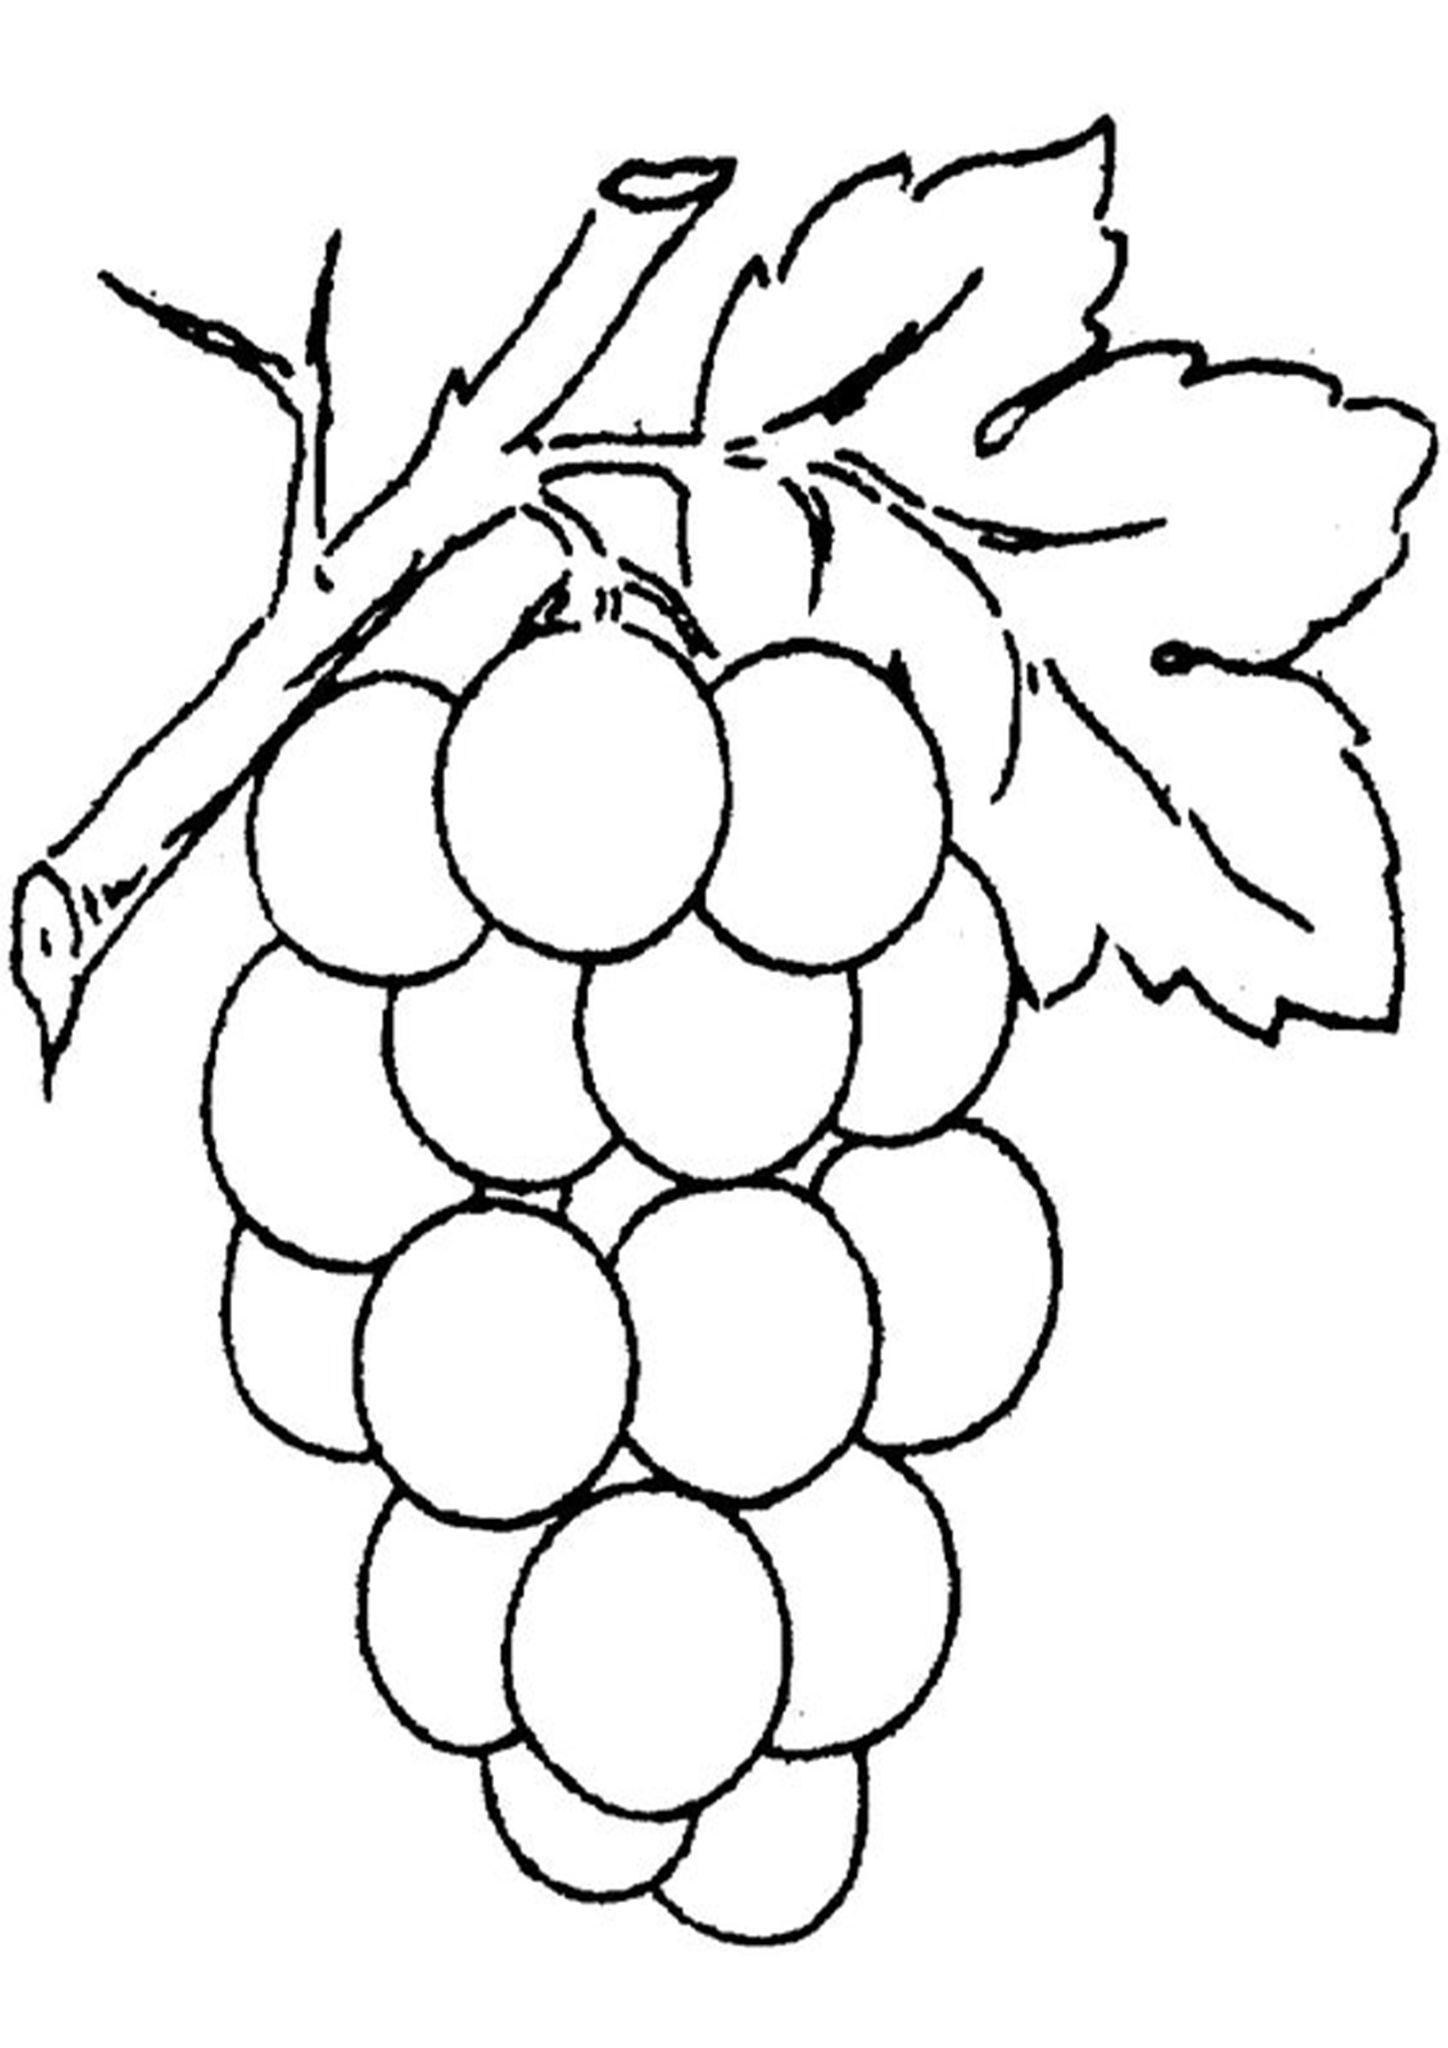 Free Easy To Print Food Coloring Pages Fruit Coloring Pages Free Coloring Pages Coloring Pages